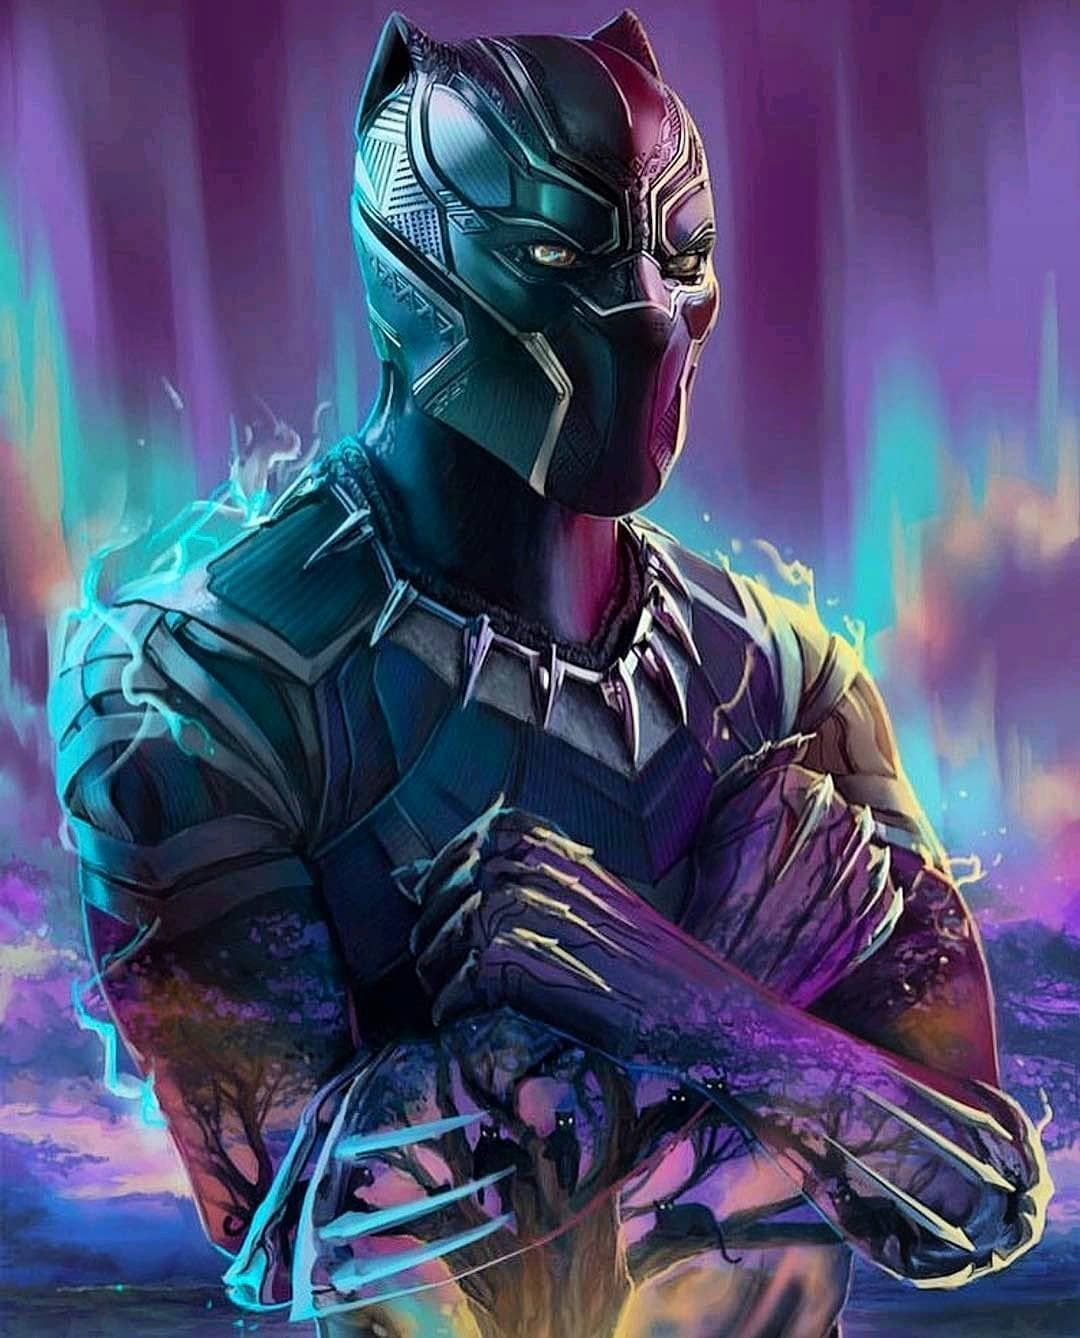 Blackpanther Wakanda Mcu Marvel Black Panther Marvel Black Panther Art Panther Art